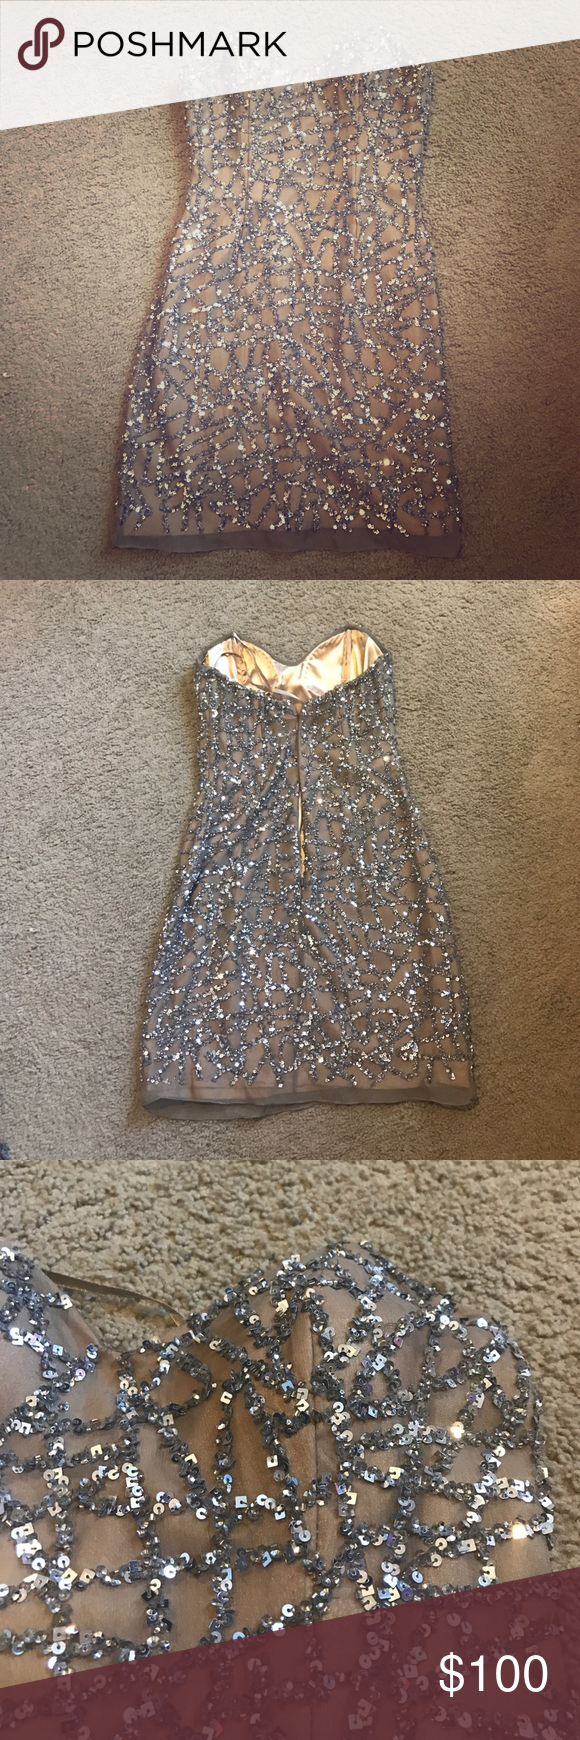 Nude Sequin dress Worn only once to my senior homecoming, this dress is my all time favorite. Perfect for prom or a formal occasion. Wish I could still fit into this!! Scala Dresses Prom